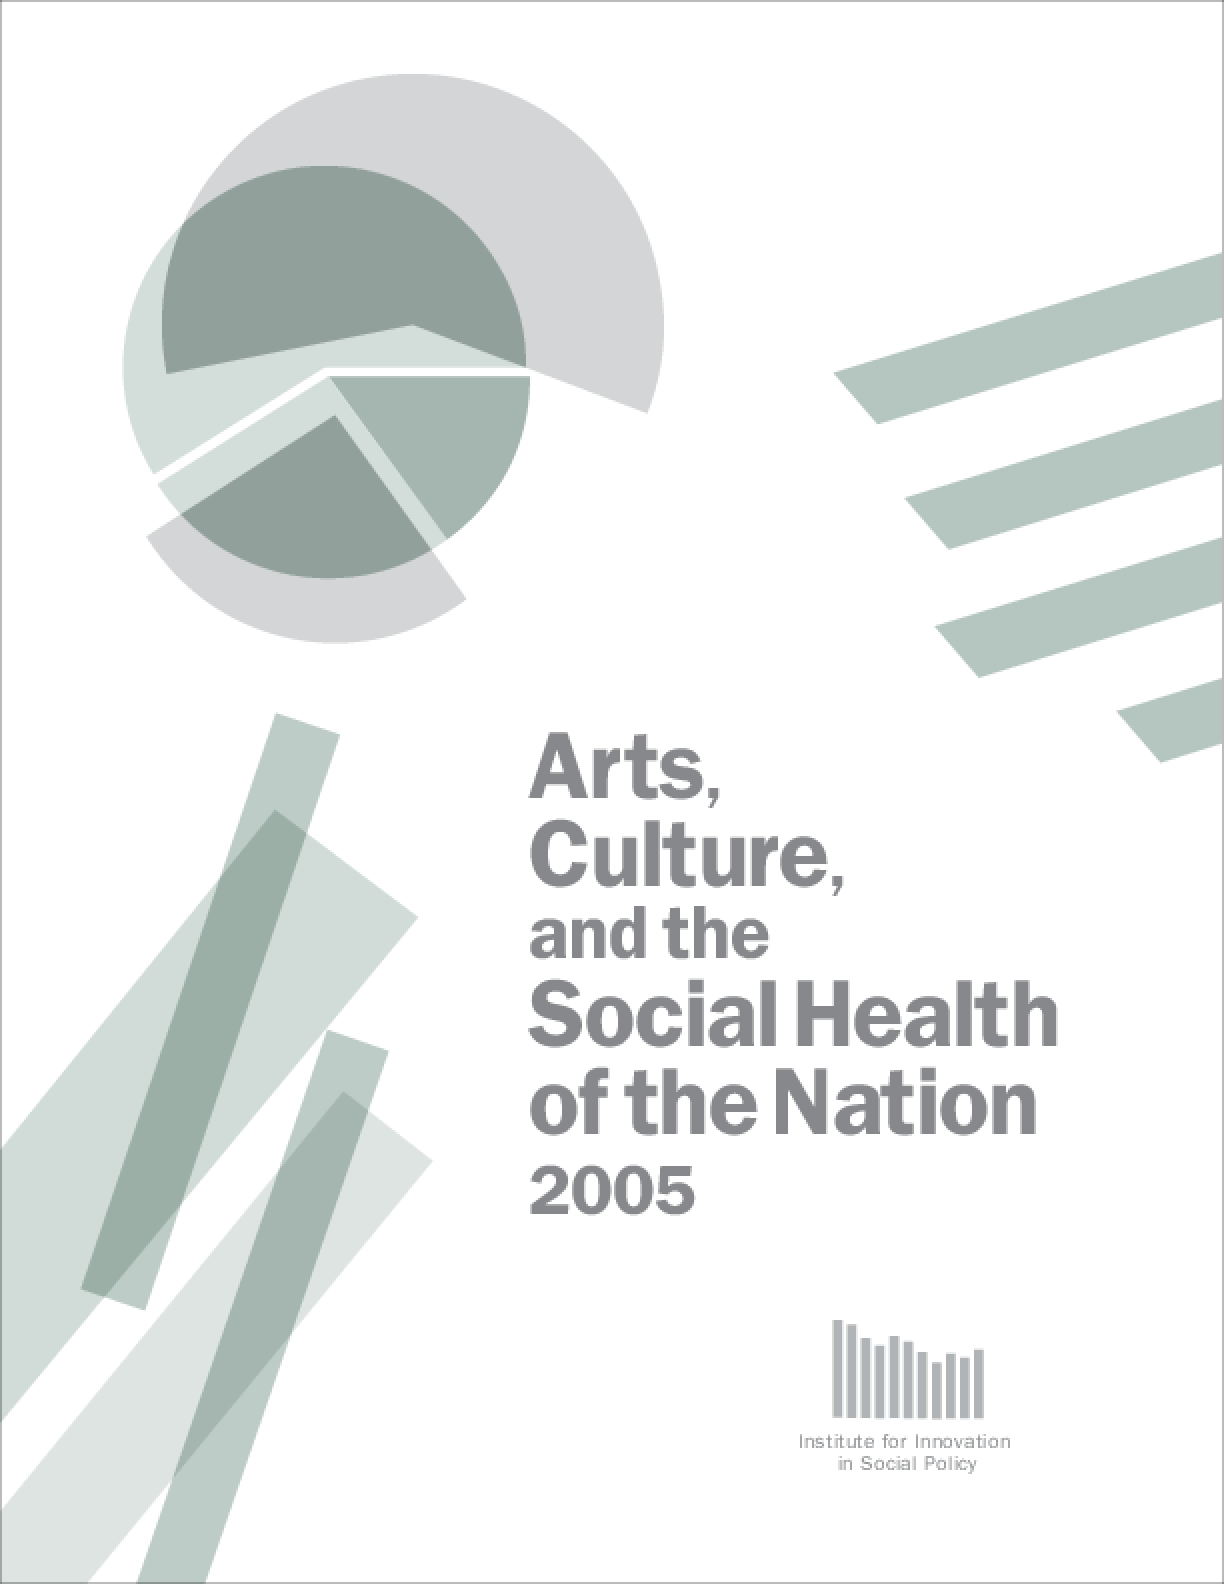 Arts, Culture, and the Social Health of the Nation 2005